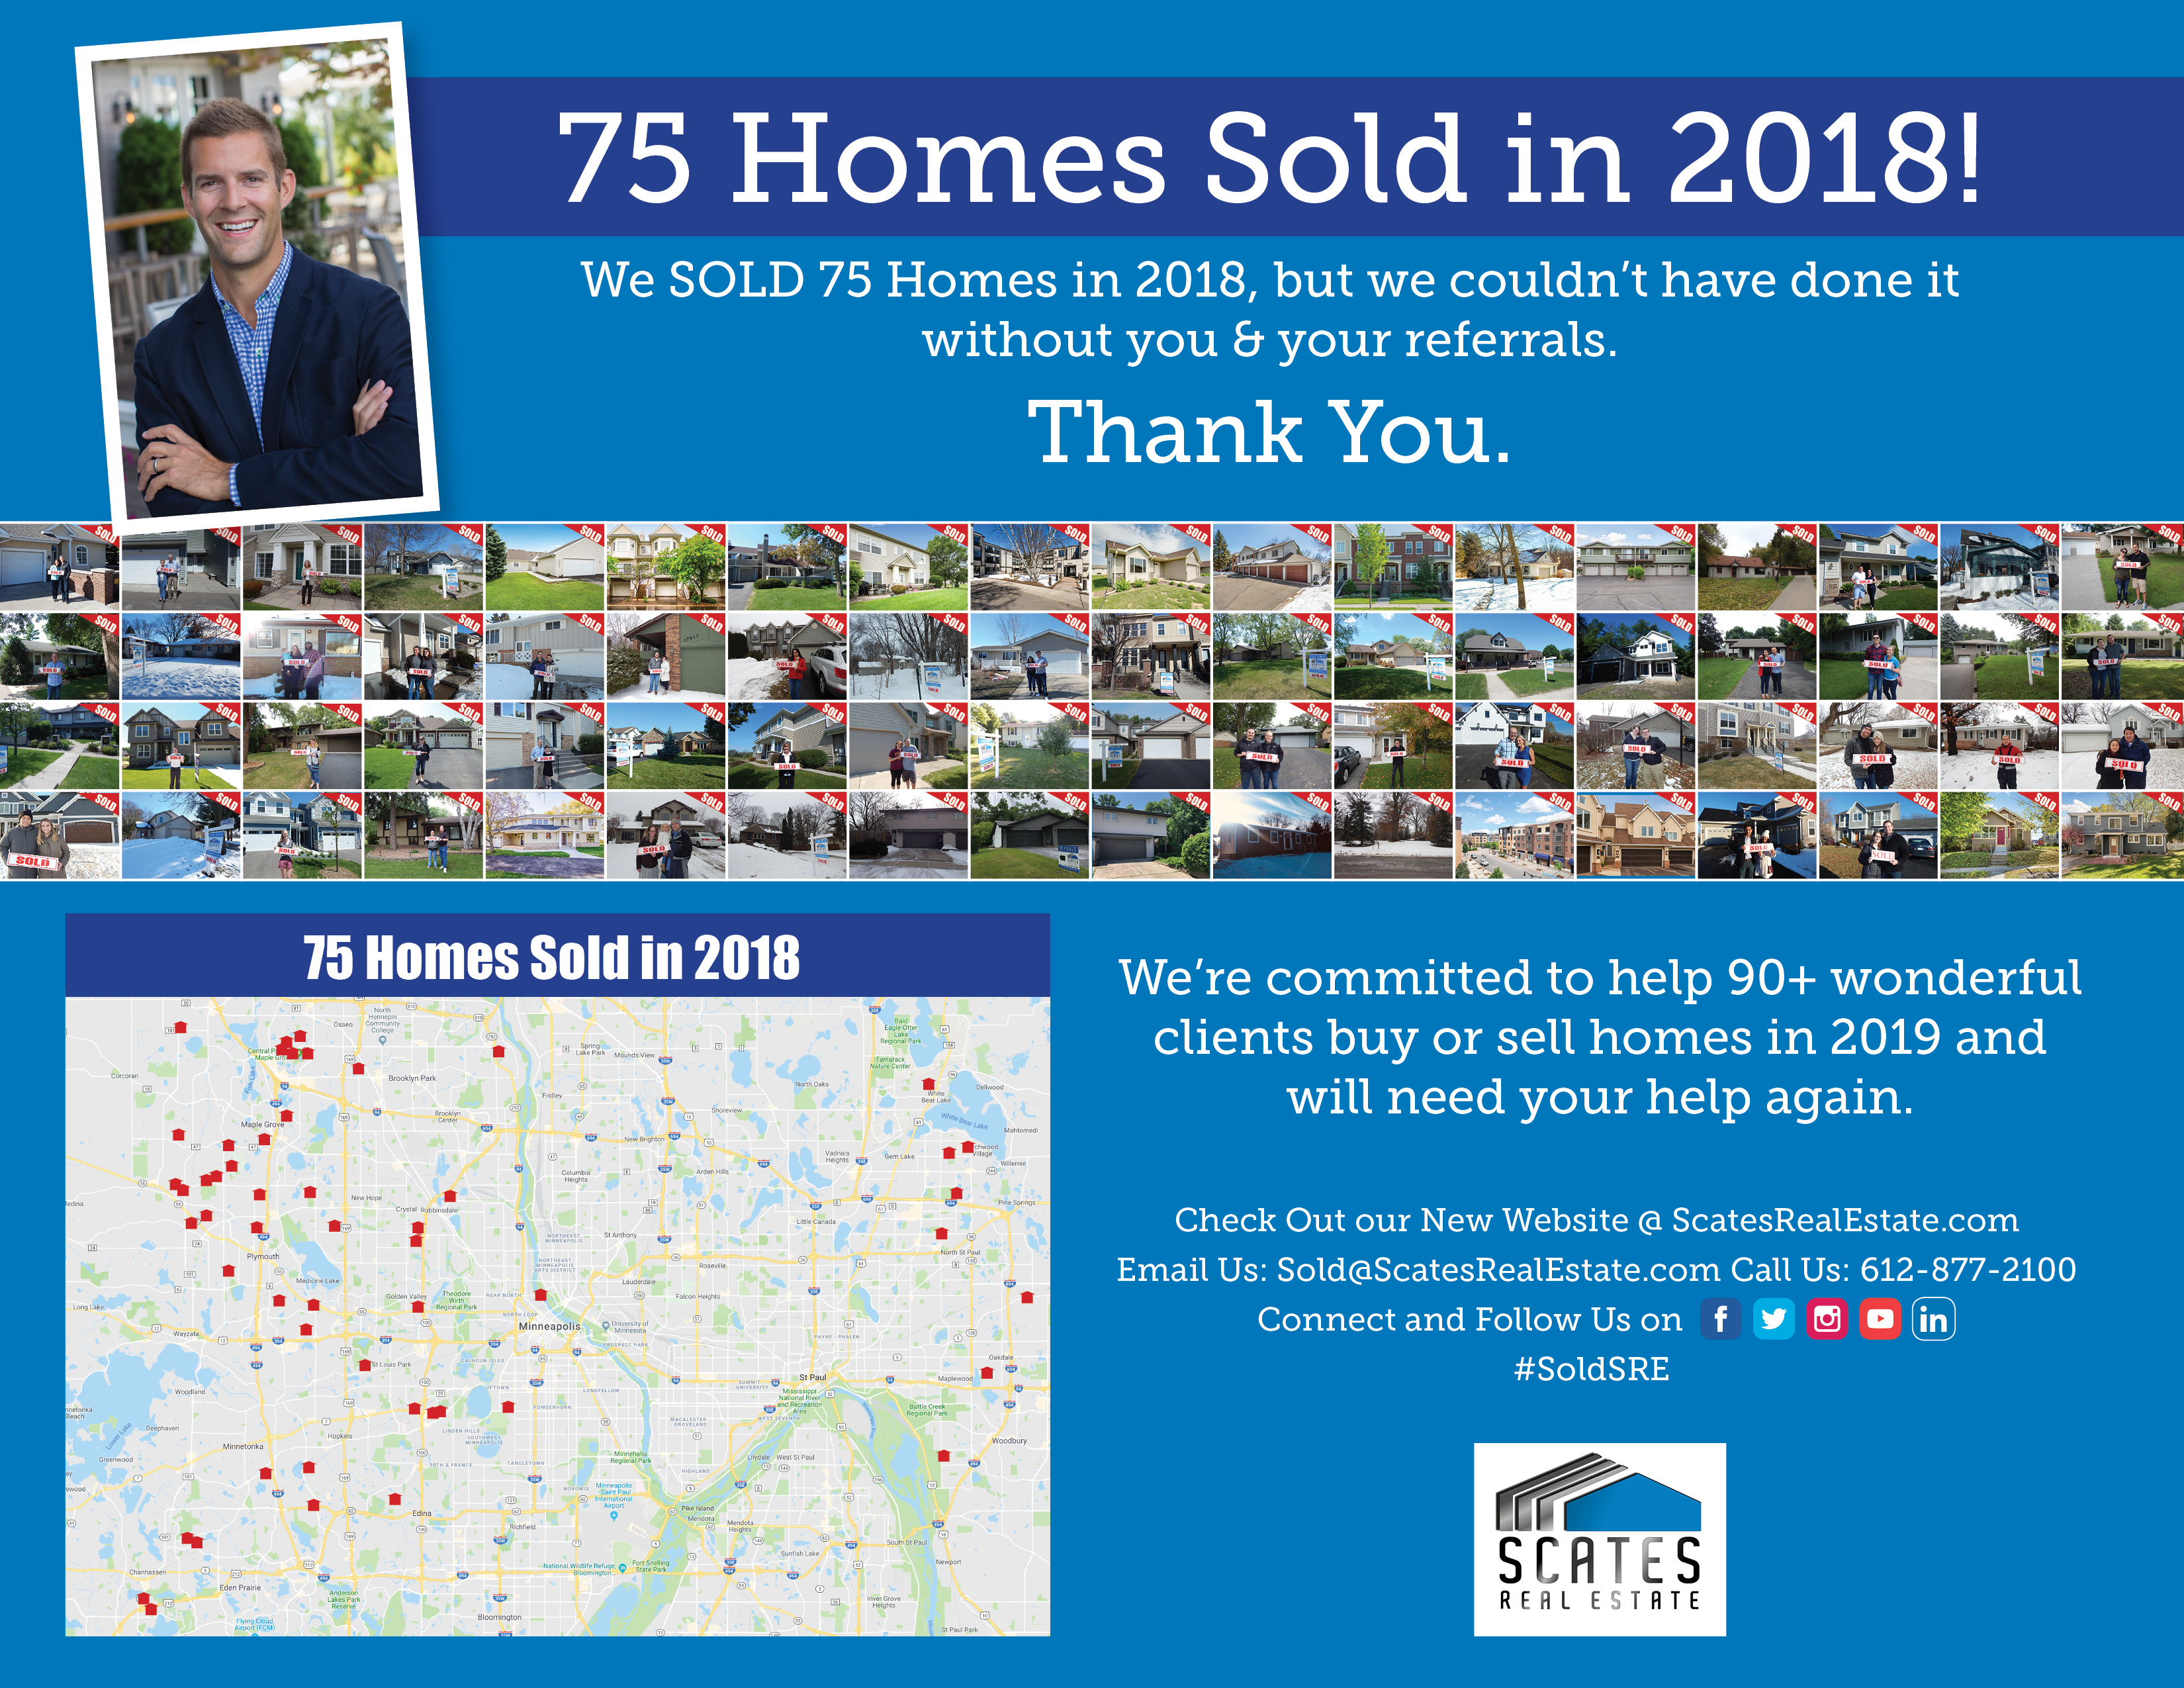 75 Homes Sold in 2018! Are you buying or selling a home in 2019?